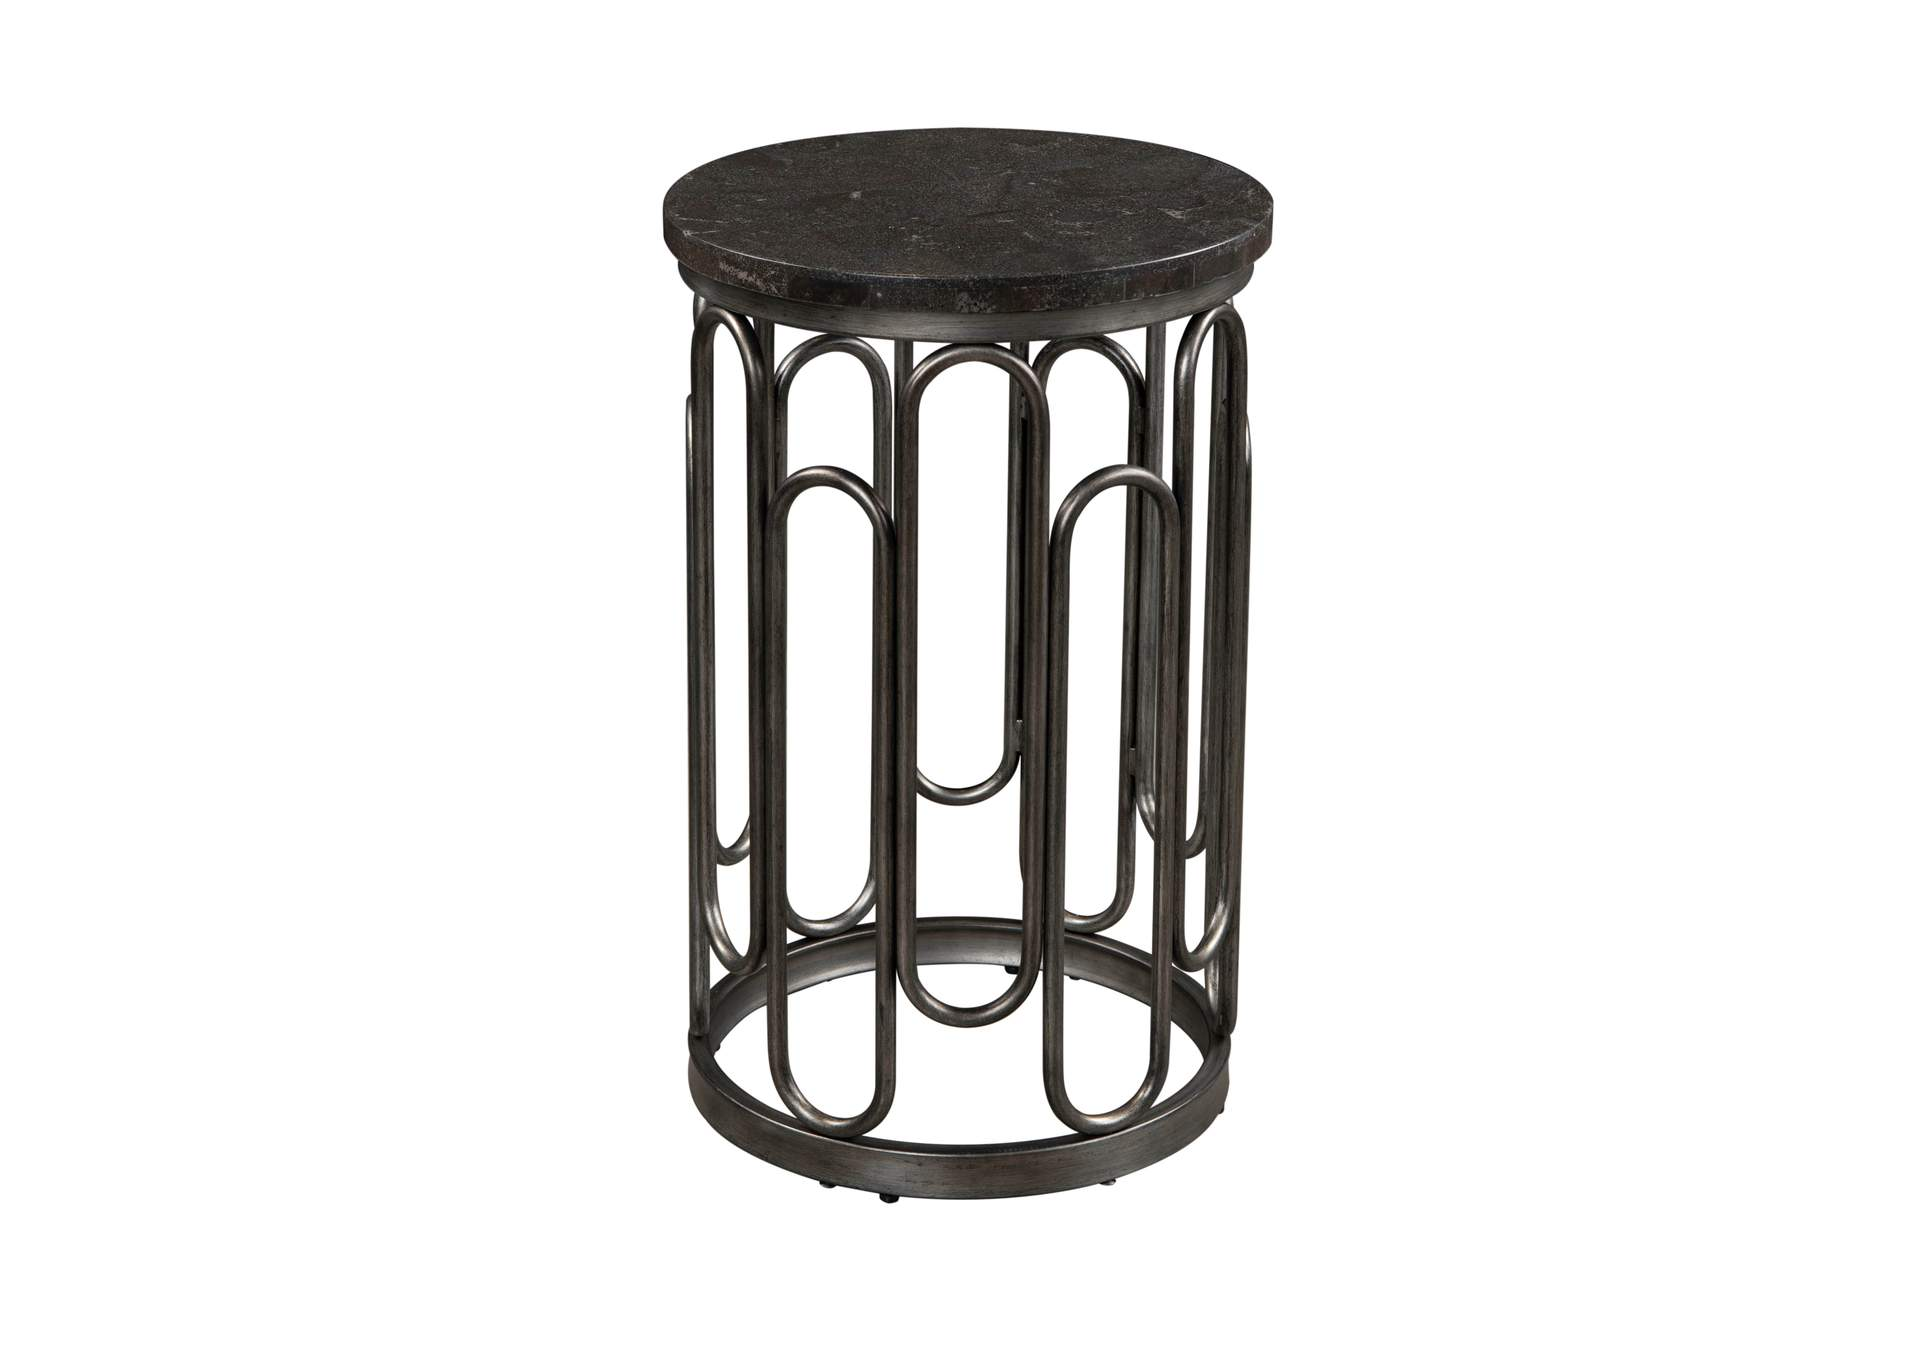 Marbella End table by Lane at Powell's Furniture and Mattress